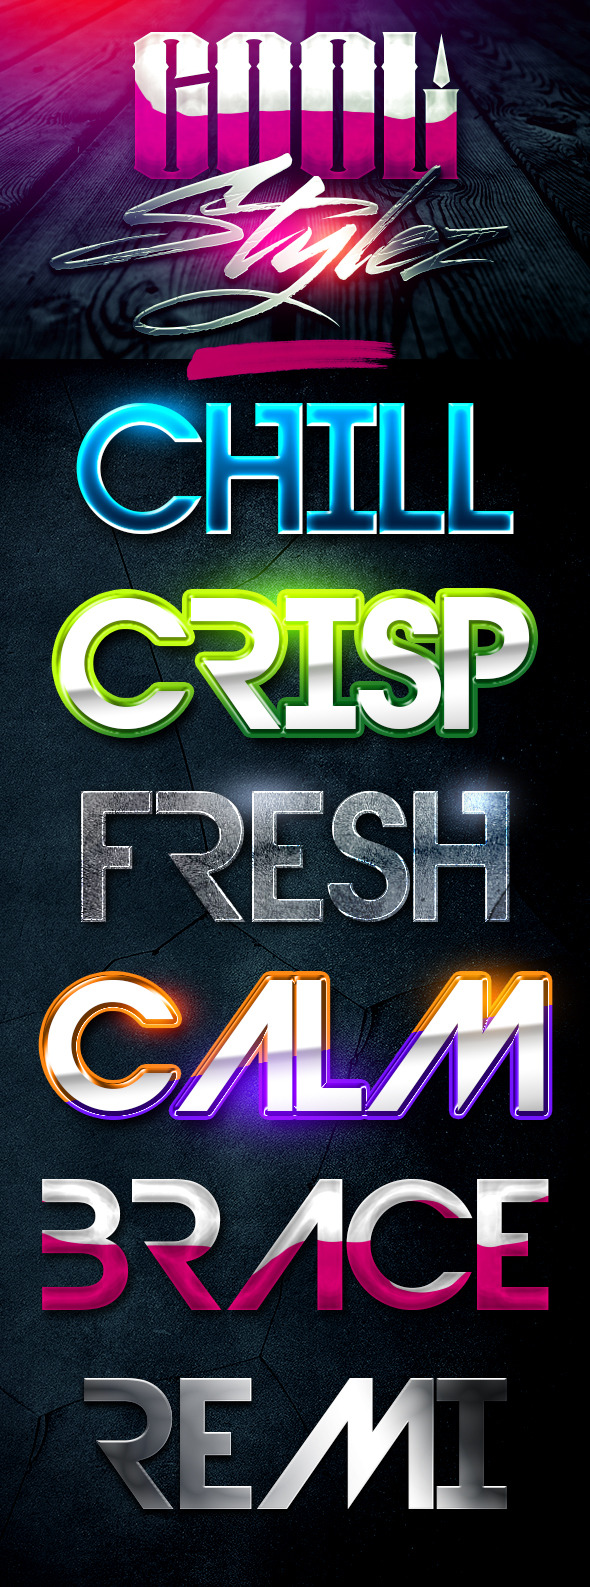 Cool Stylez Varied Photoshop Layer Styles - Text Effects Styles